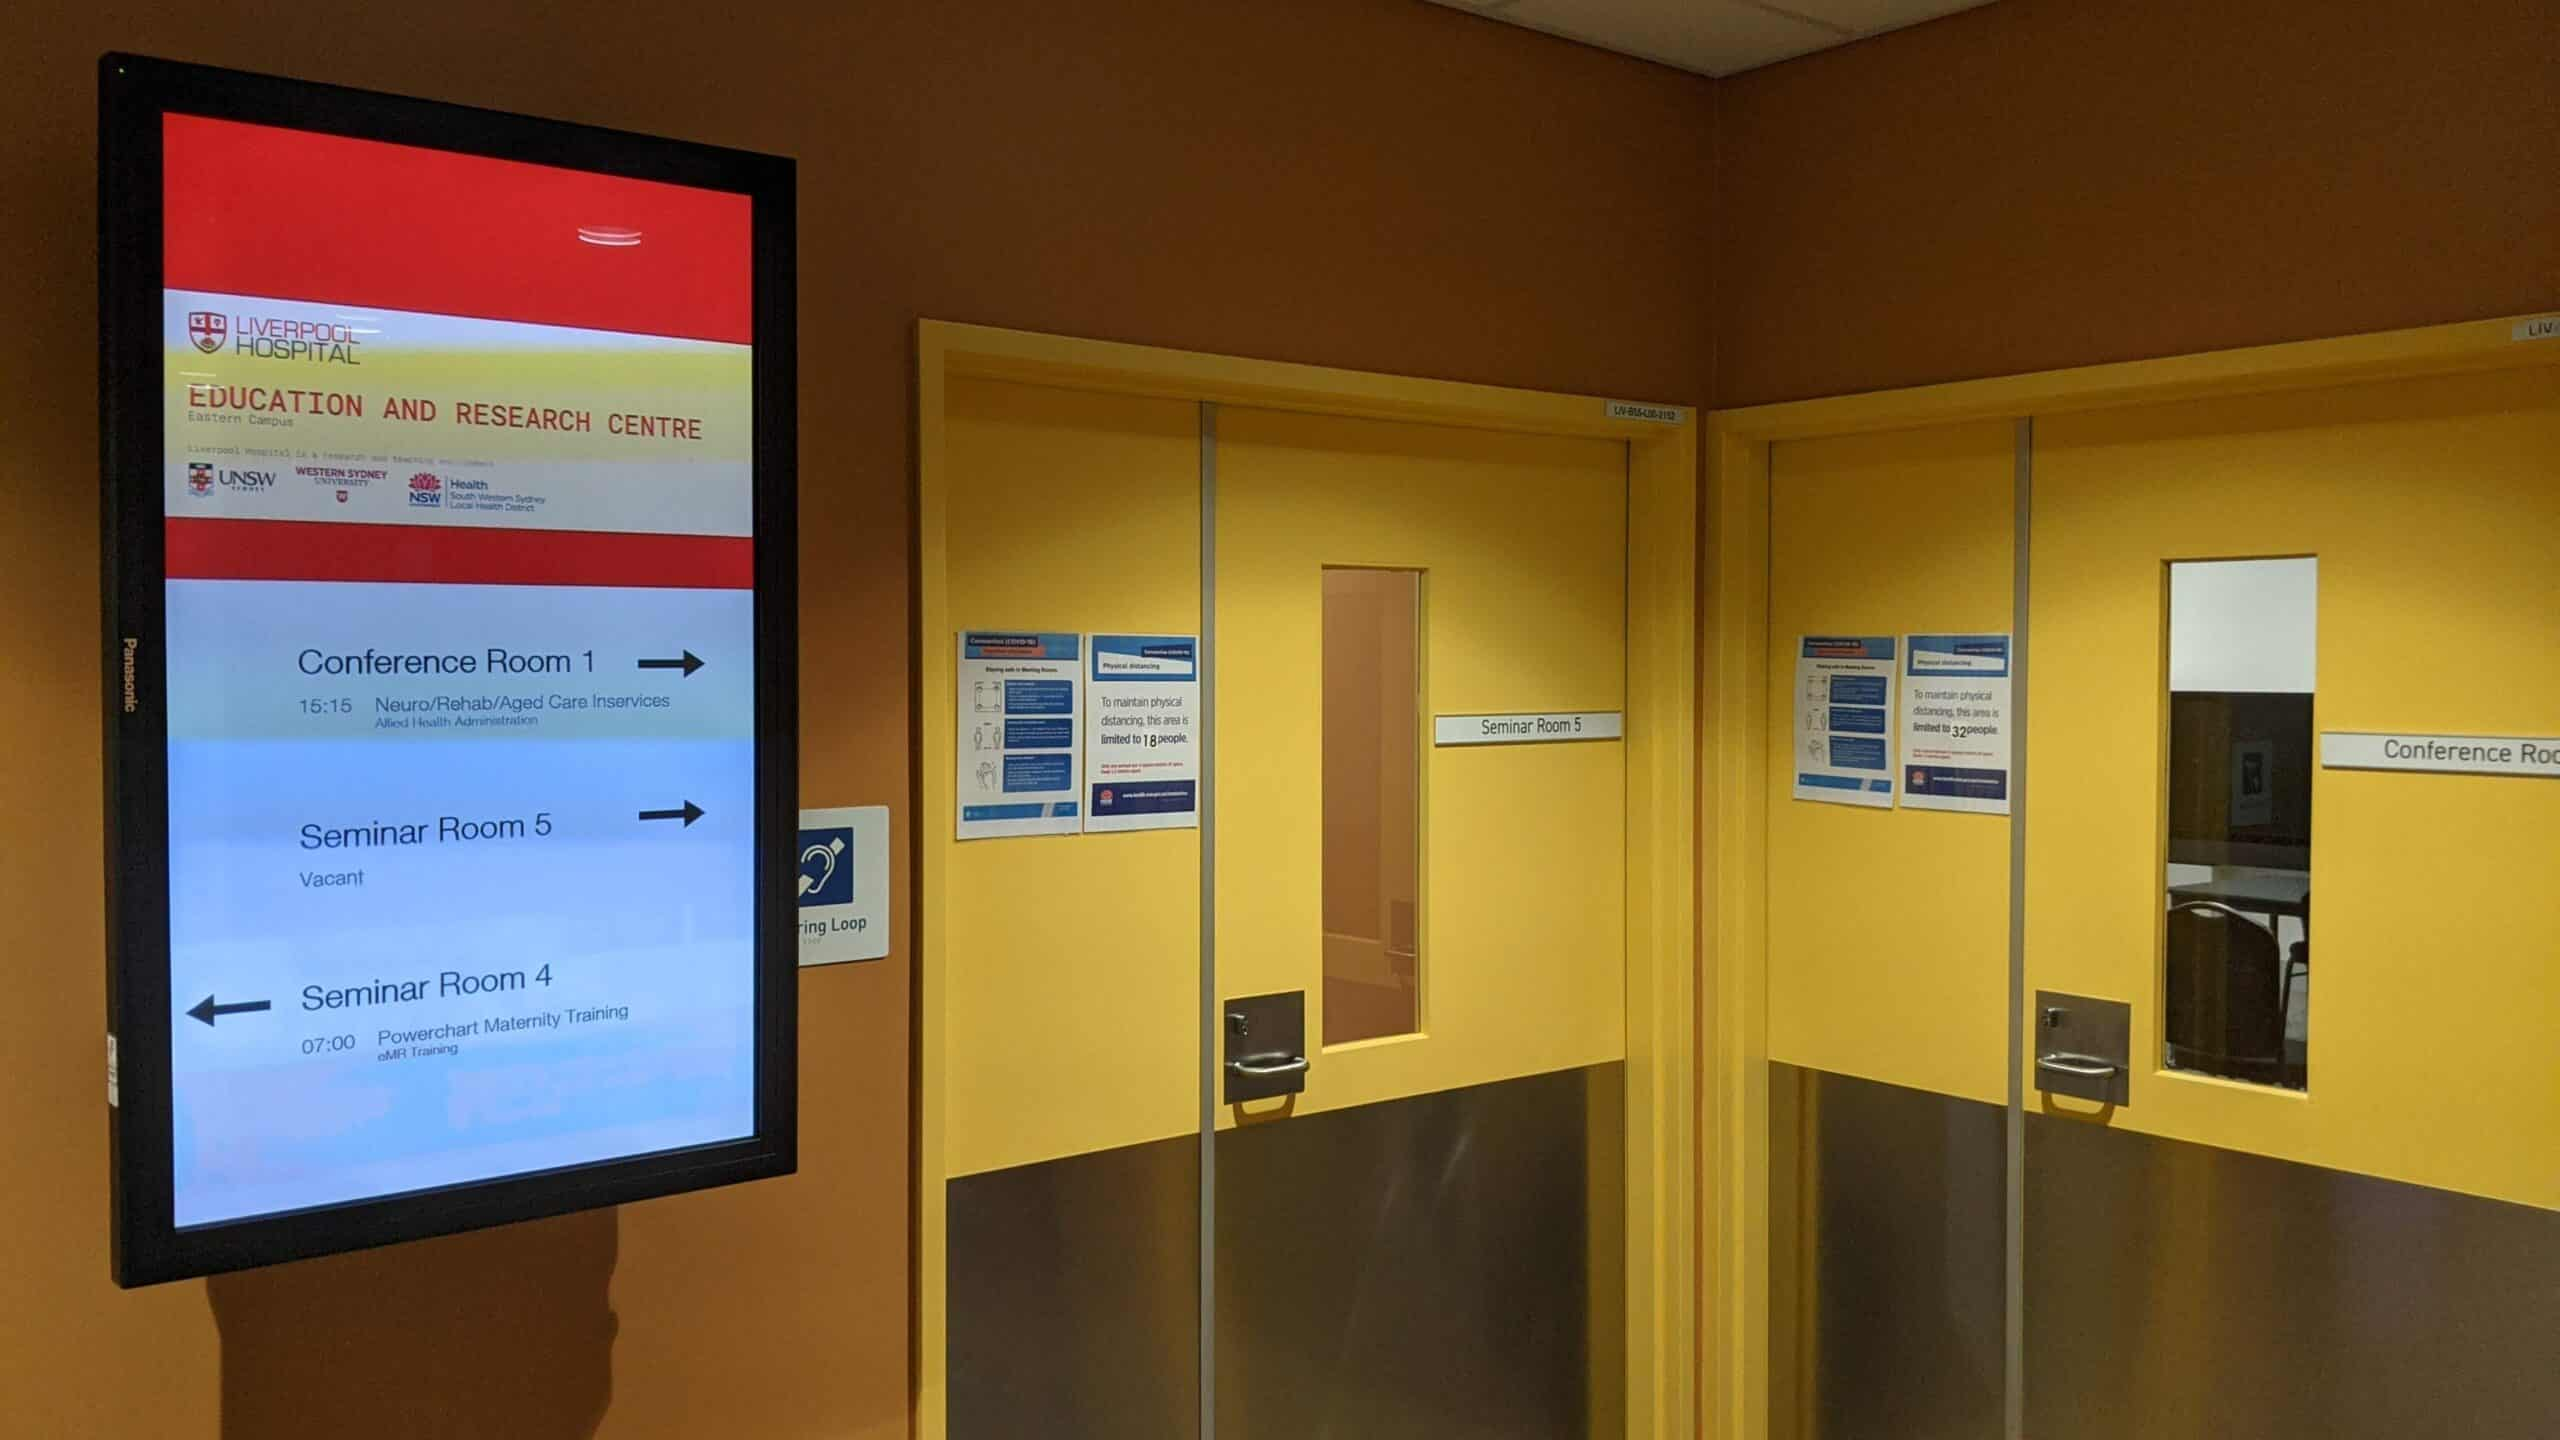 Advertise Me Digital Wayfinding Liverpool Hospital Education and Research Centre Confere scaled